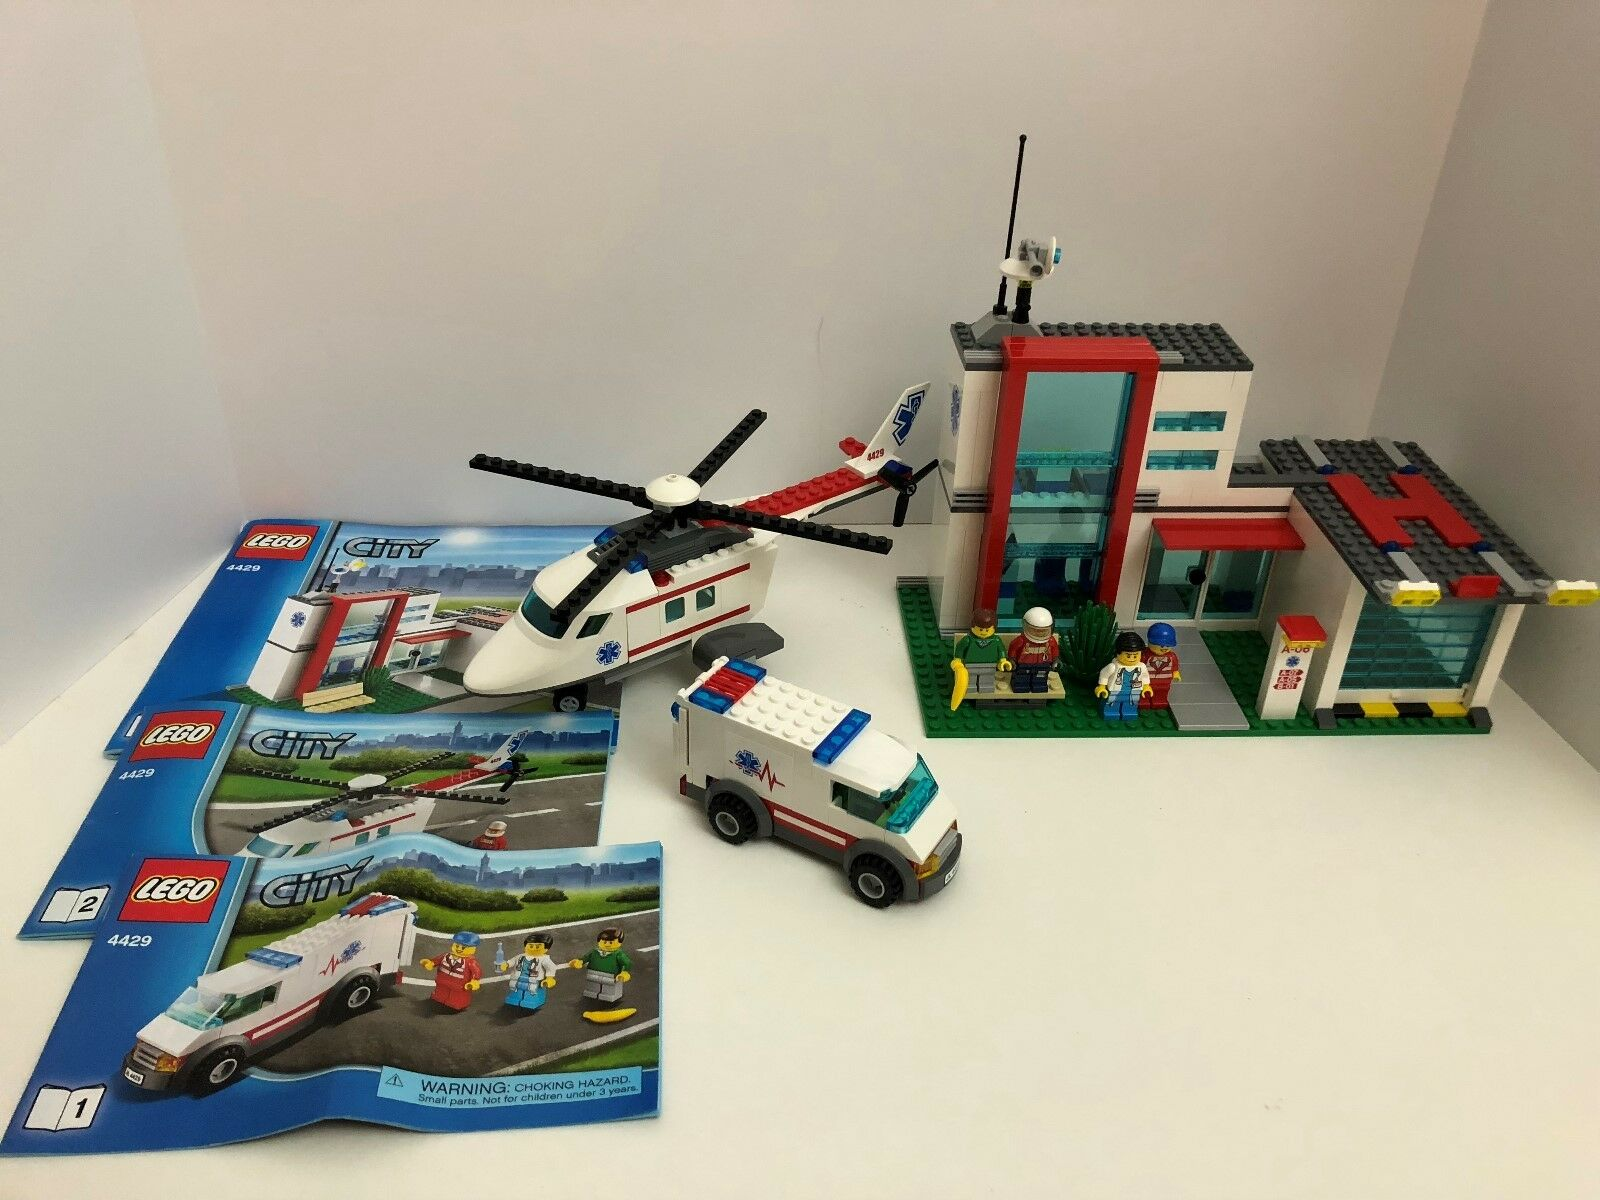 LEGO CITY*HELICOPTER RESCUE**4429*** COMPLETE W/ FIGS / INSTRUCTIONS